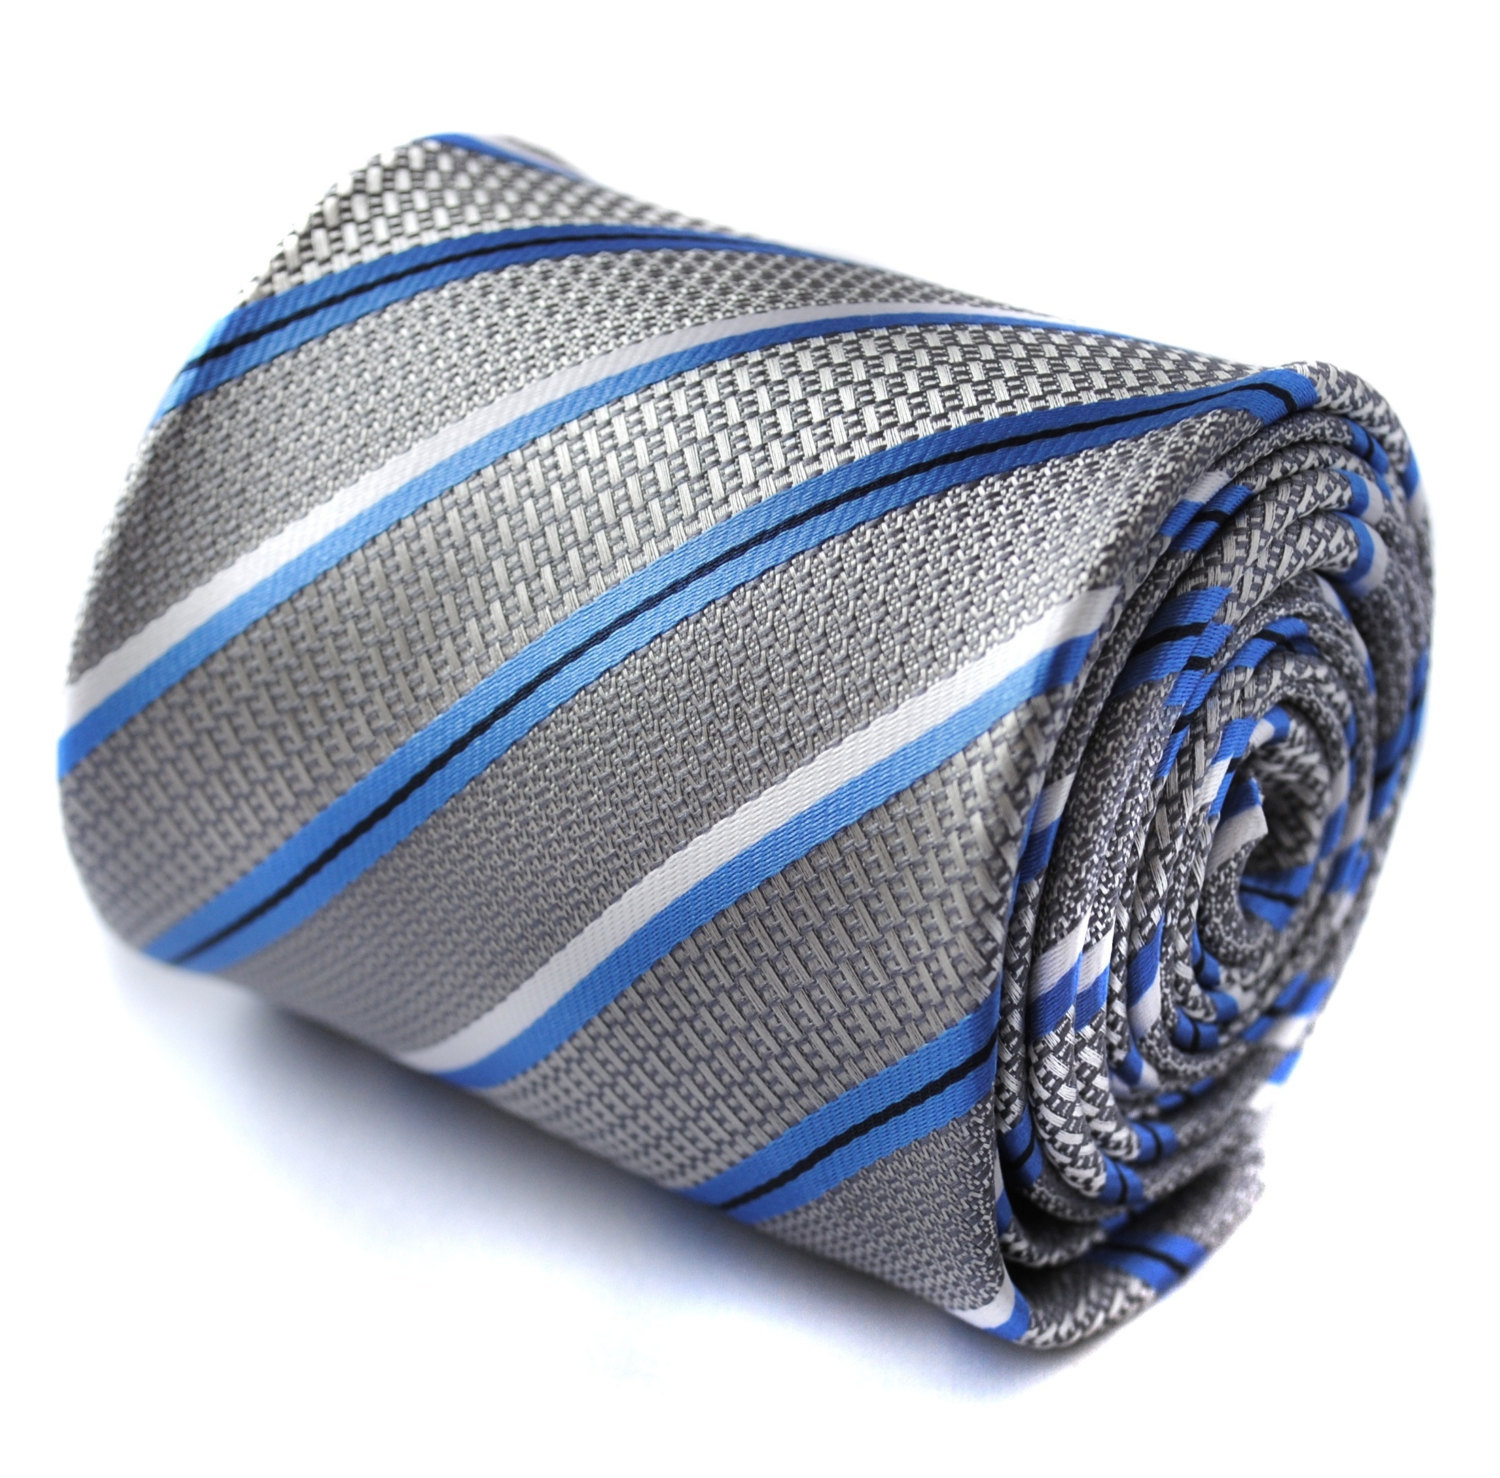 grey, blue and white striped tie with signature floral design to the rear by Fre